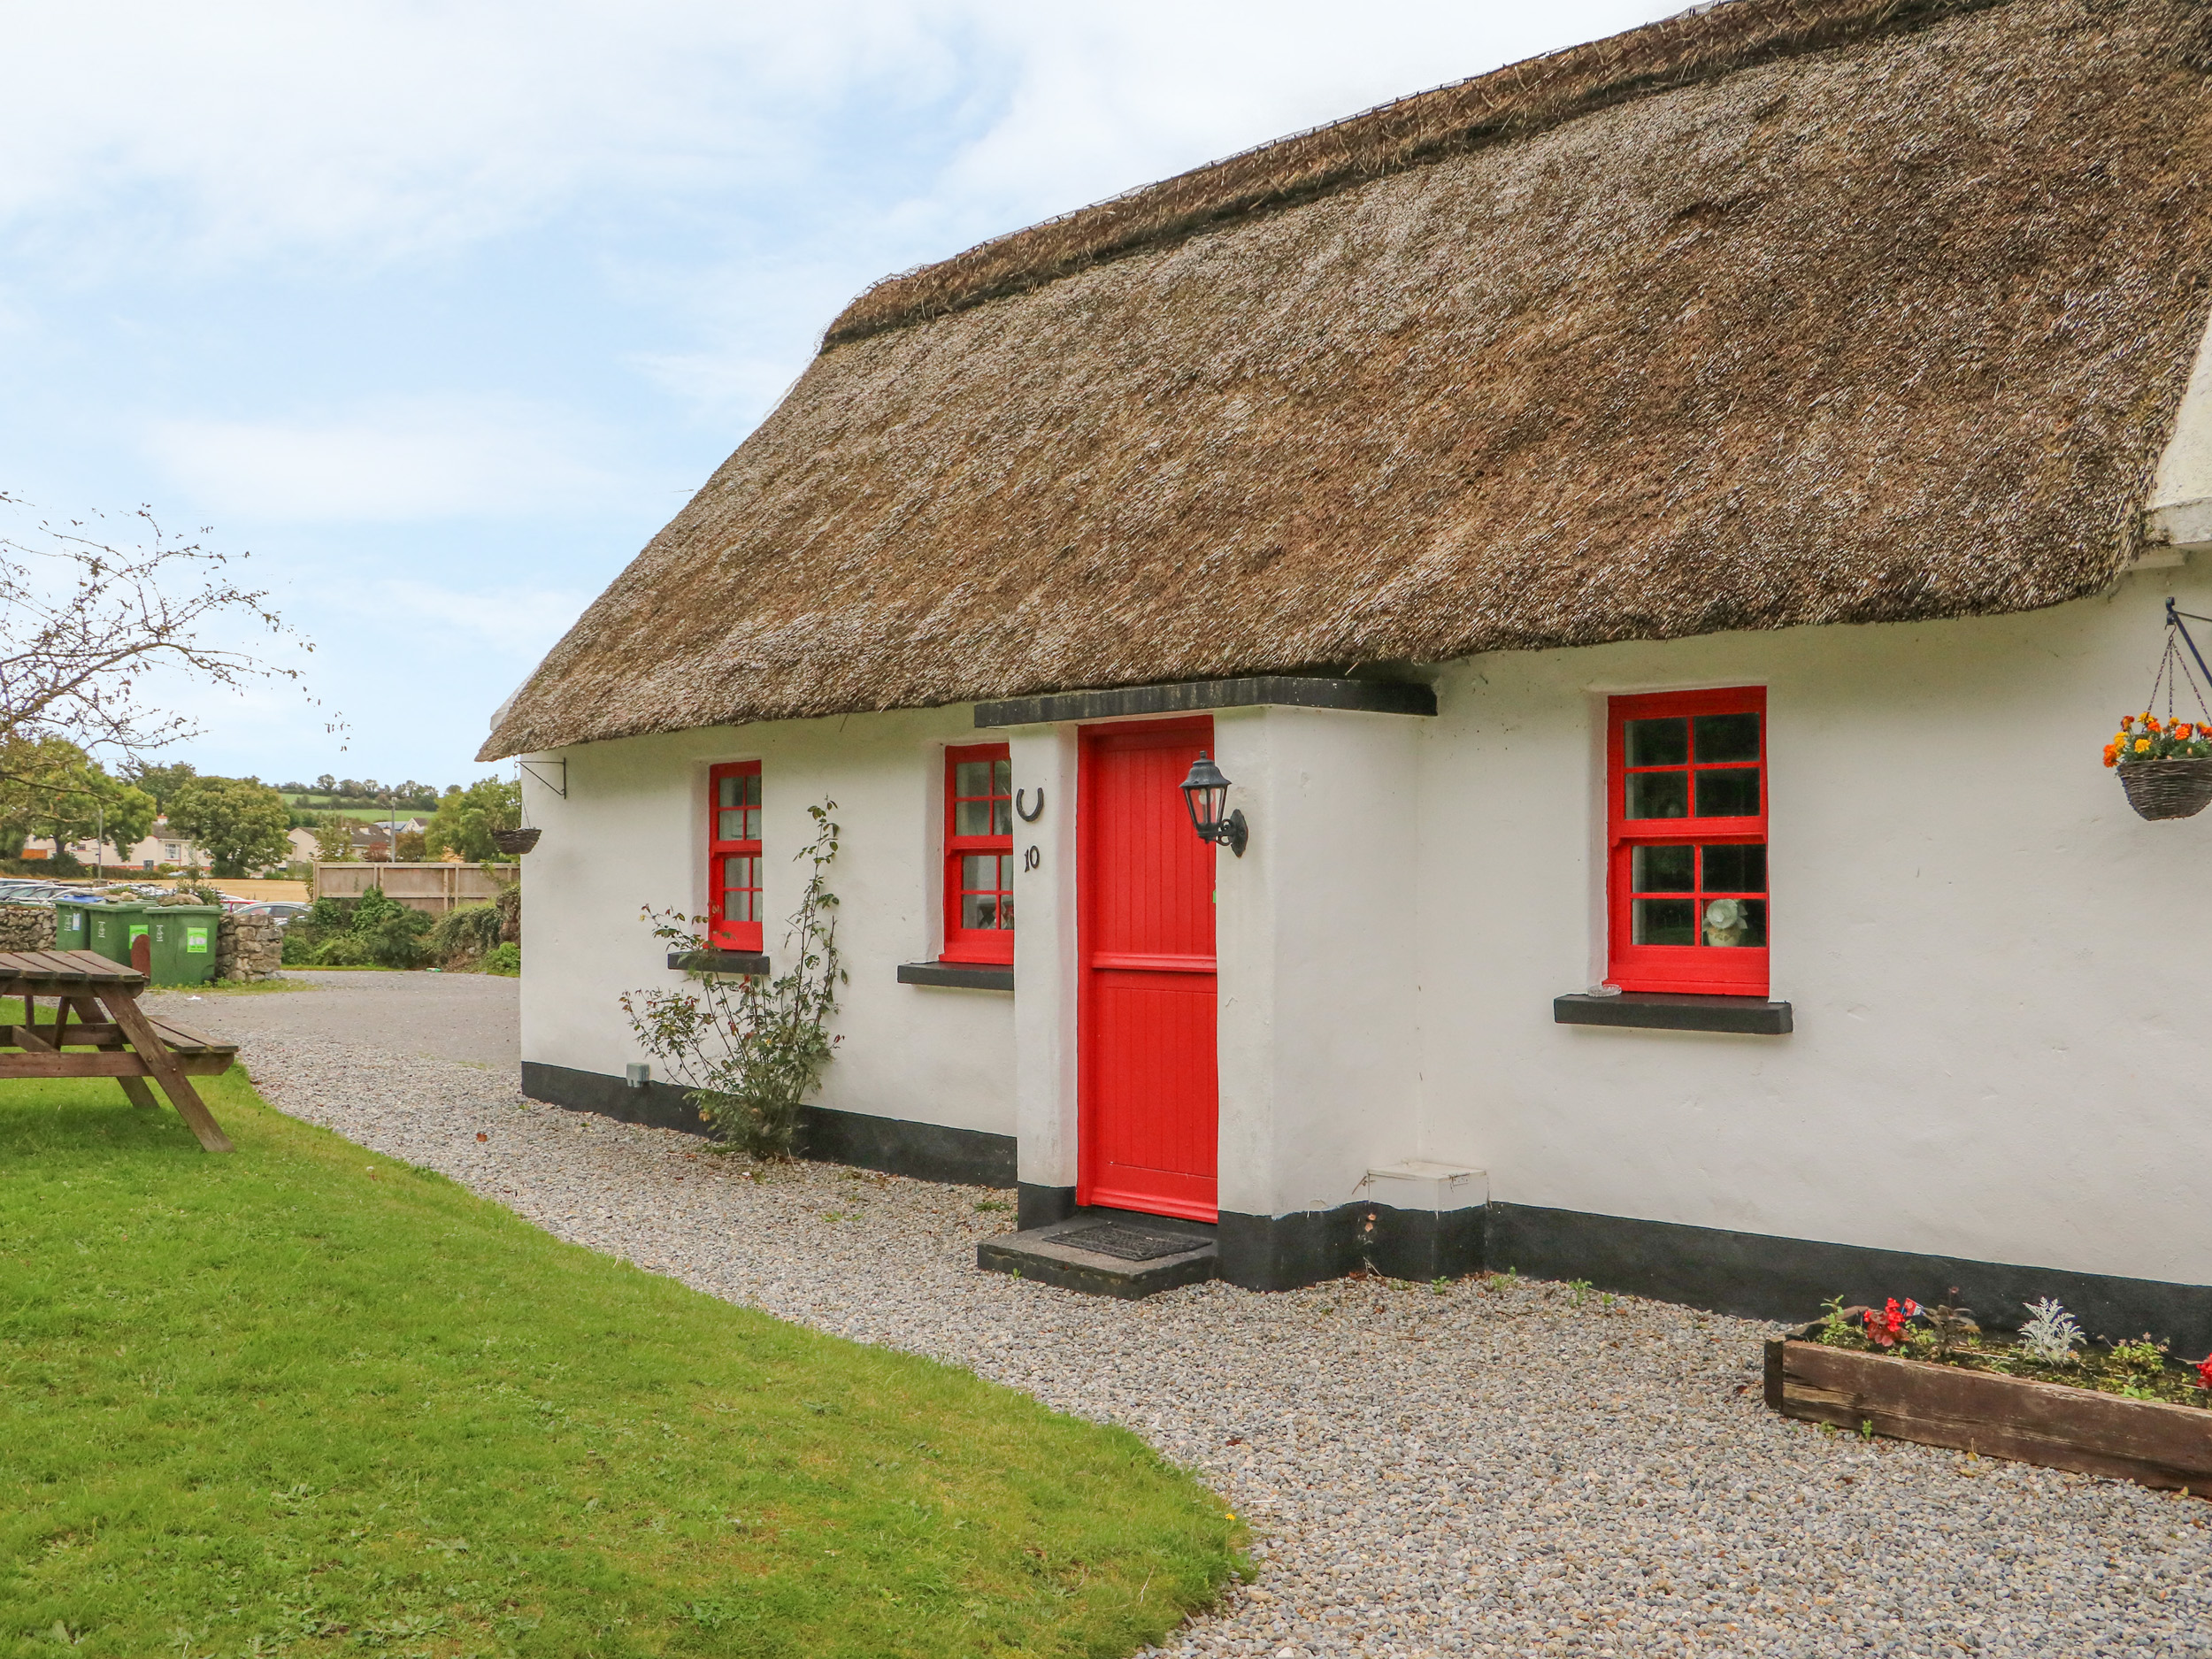 No. 10 Tipperary Thatched Cottages, Ireland